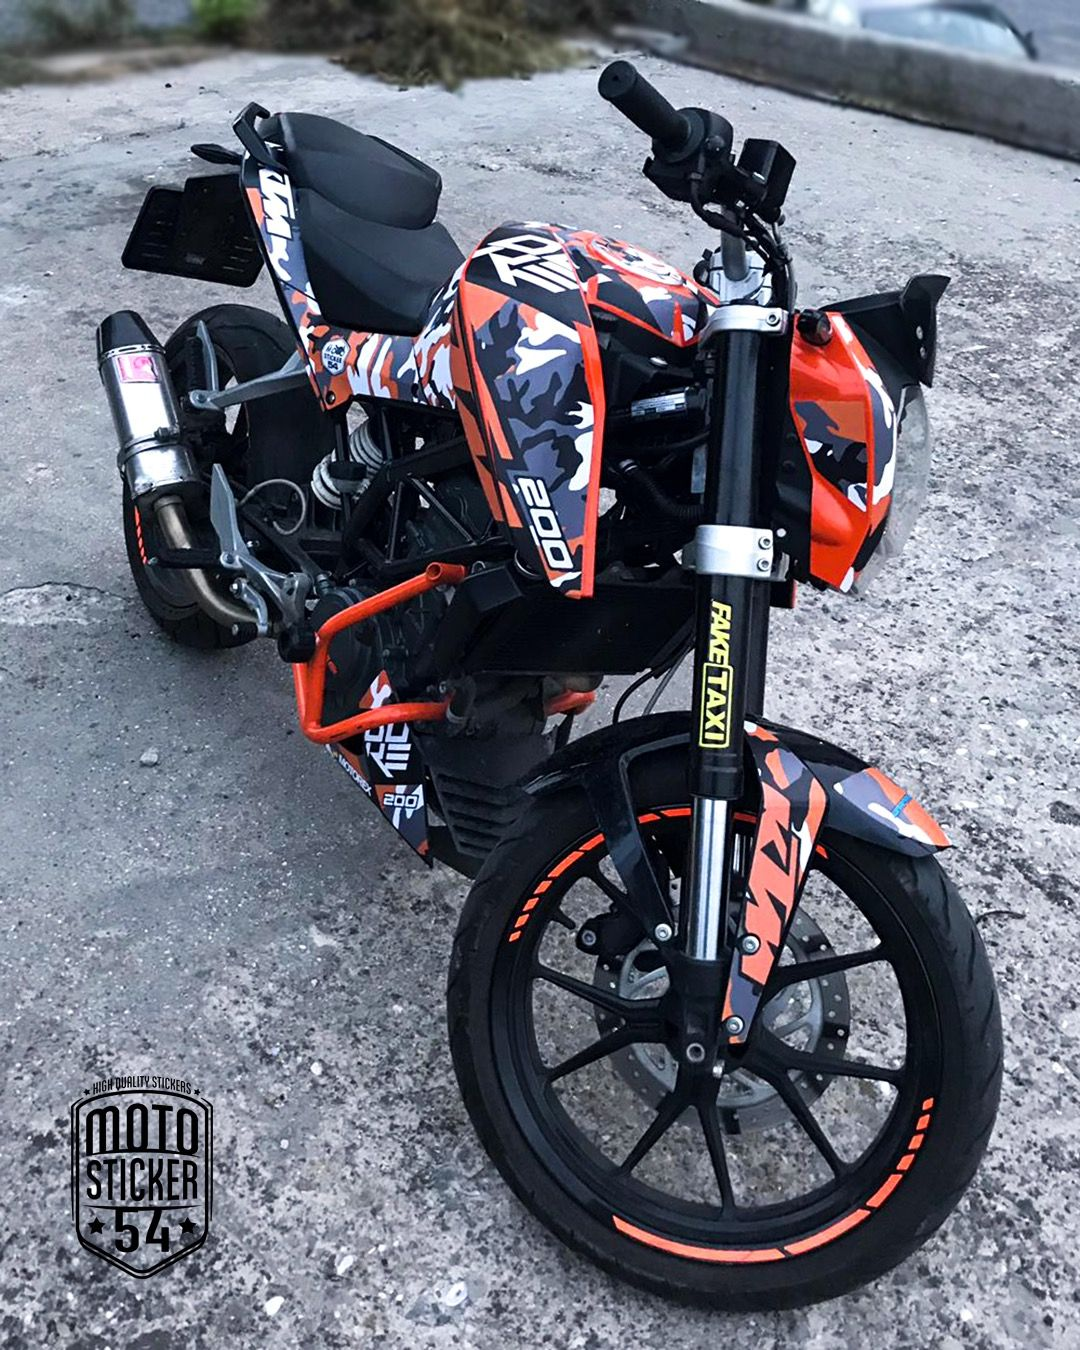 Pin By Juan Porta On Duke Ktm Duke Ktm Duke 200 Ktm